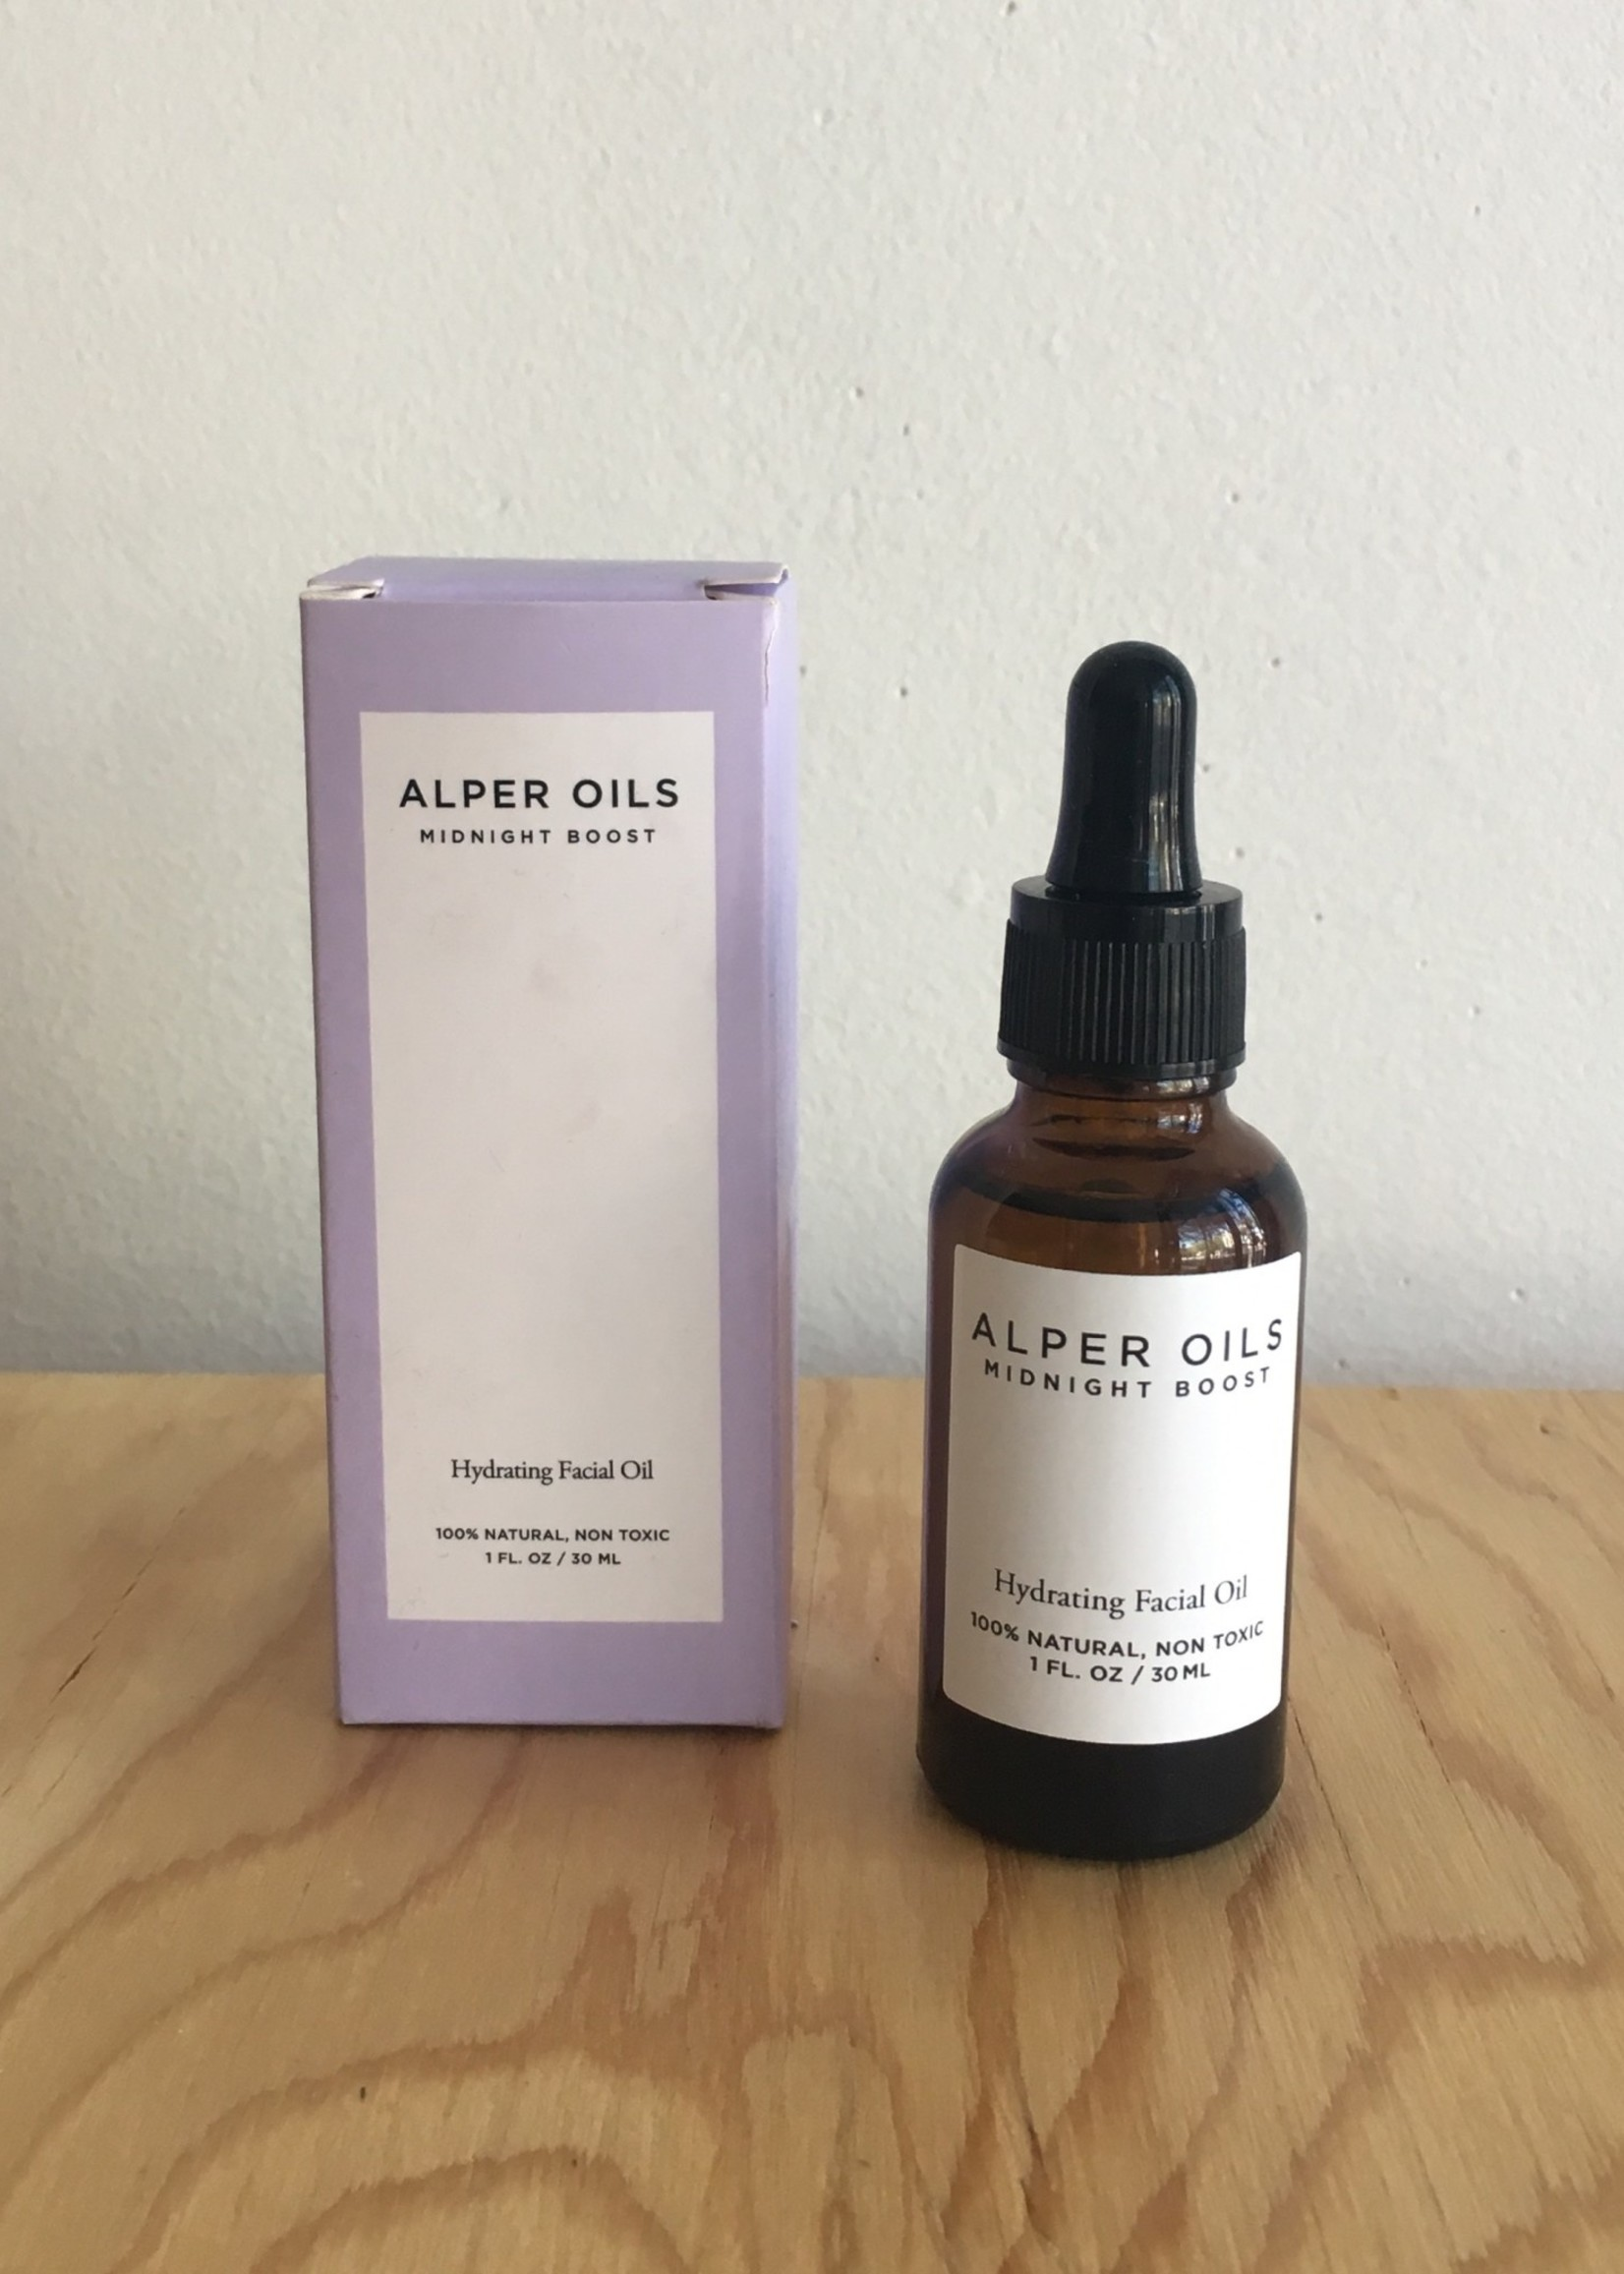 Alper Oils Alper Oil Serums